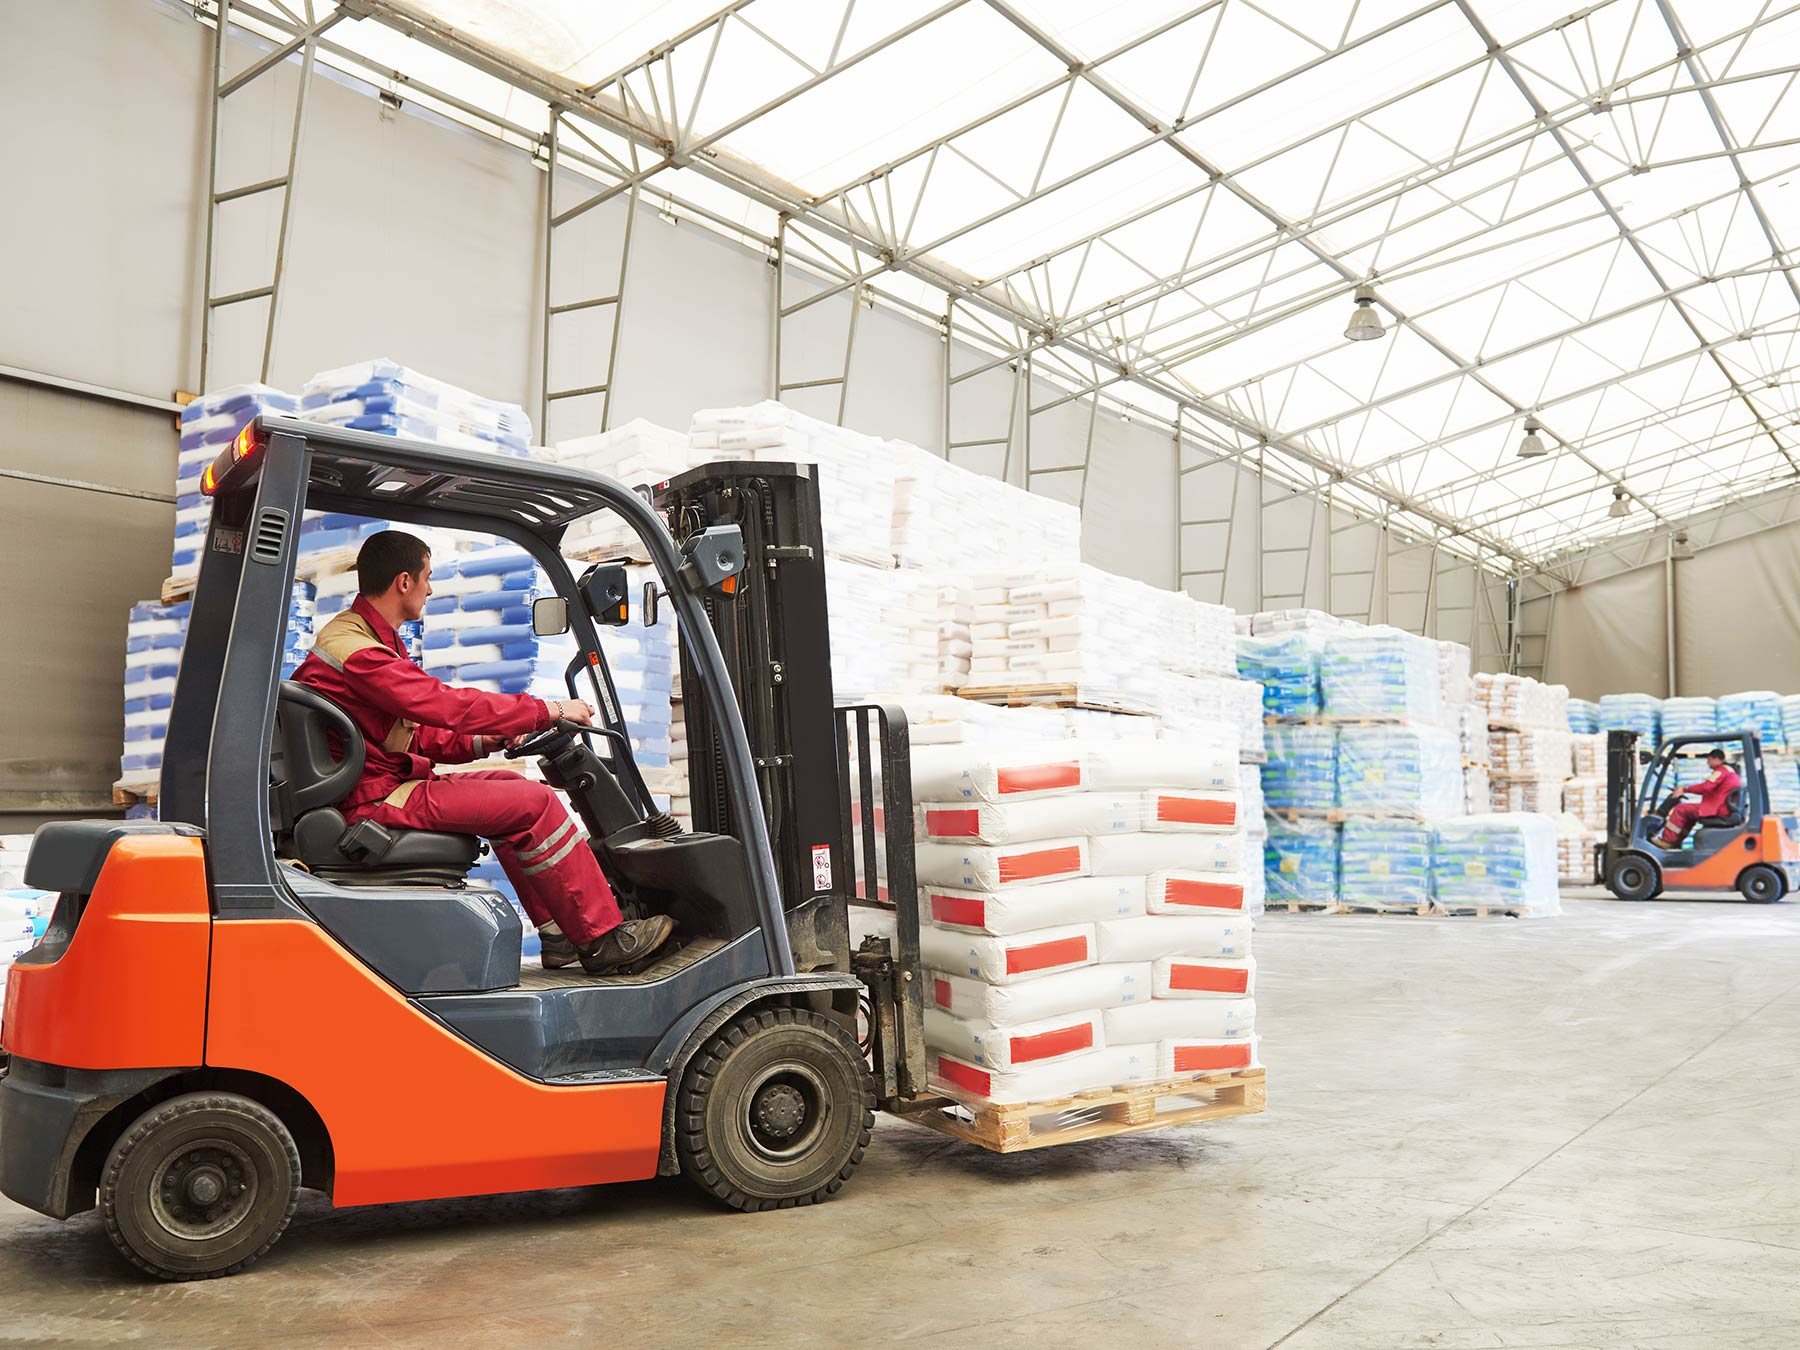 The 15 Forklift Safety Tips To Avoid Injuries